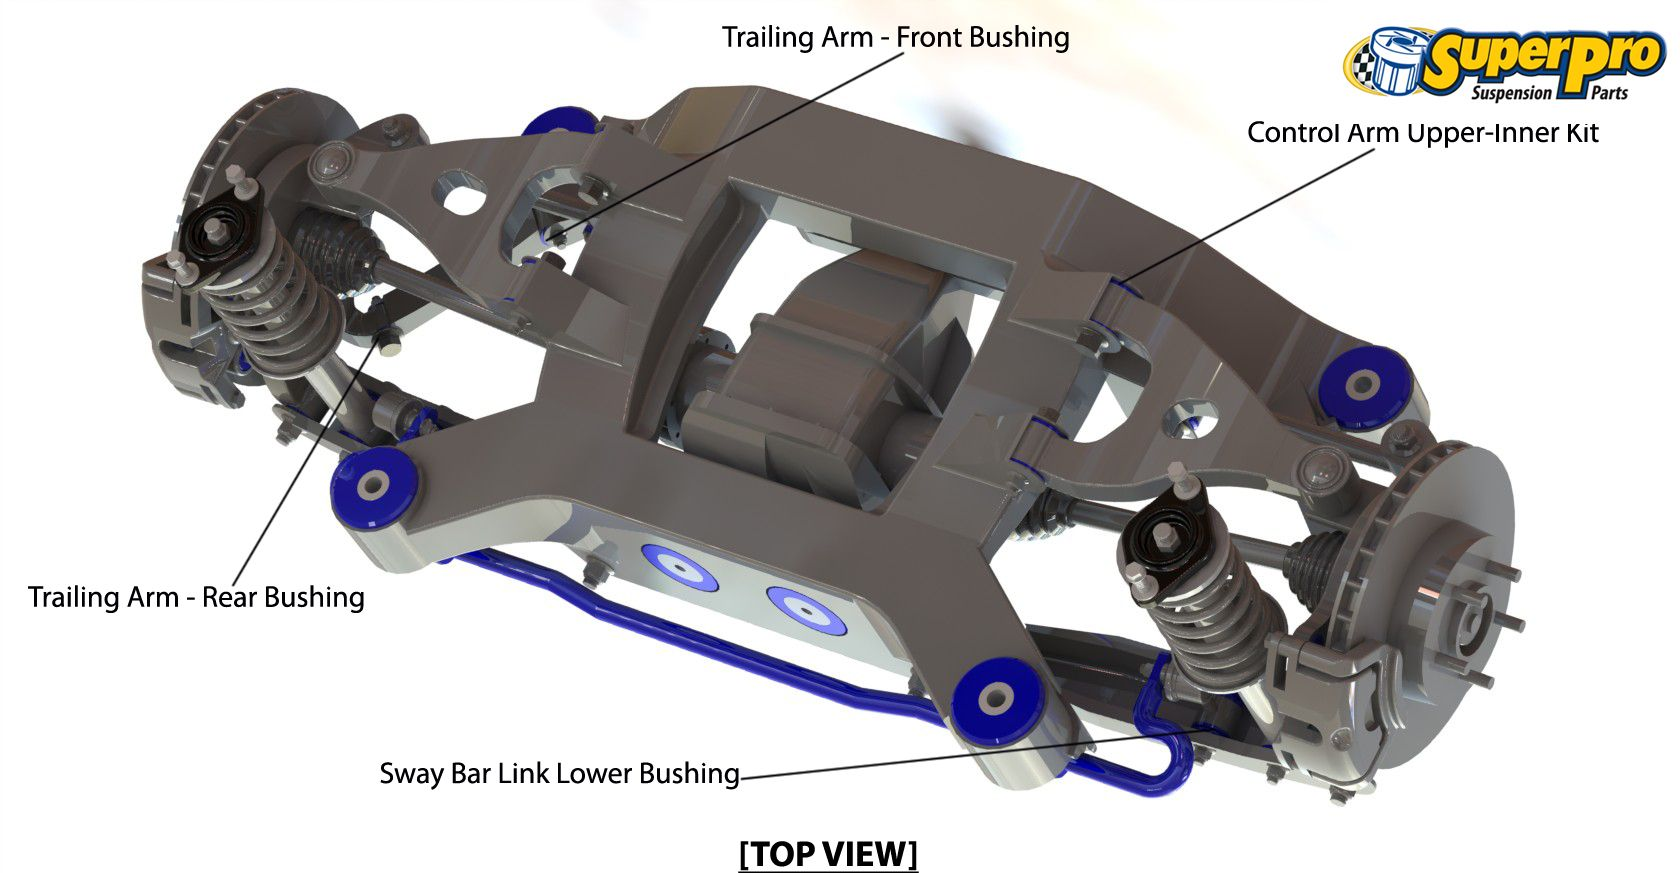 rear suspension diagram for mitsubishi pajero ns nt nw 2006 on [ 1680 x 873 Pixel ]